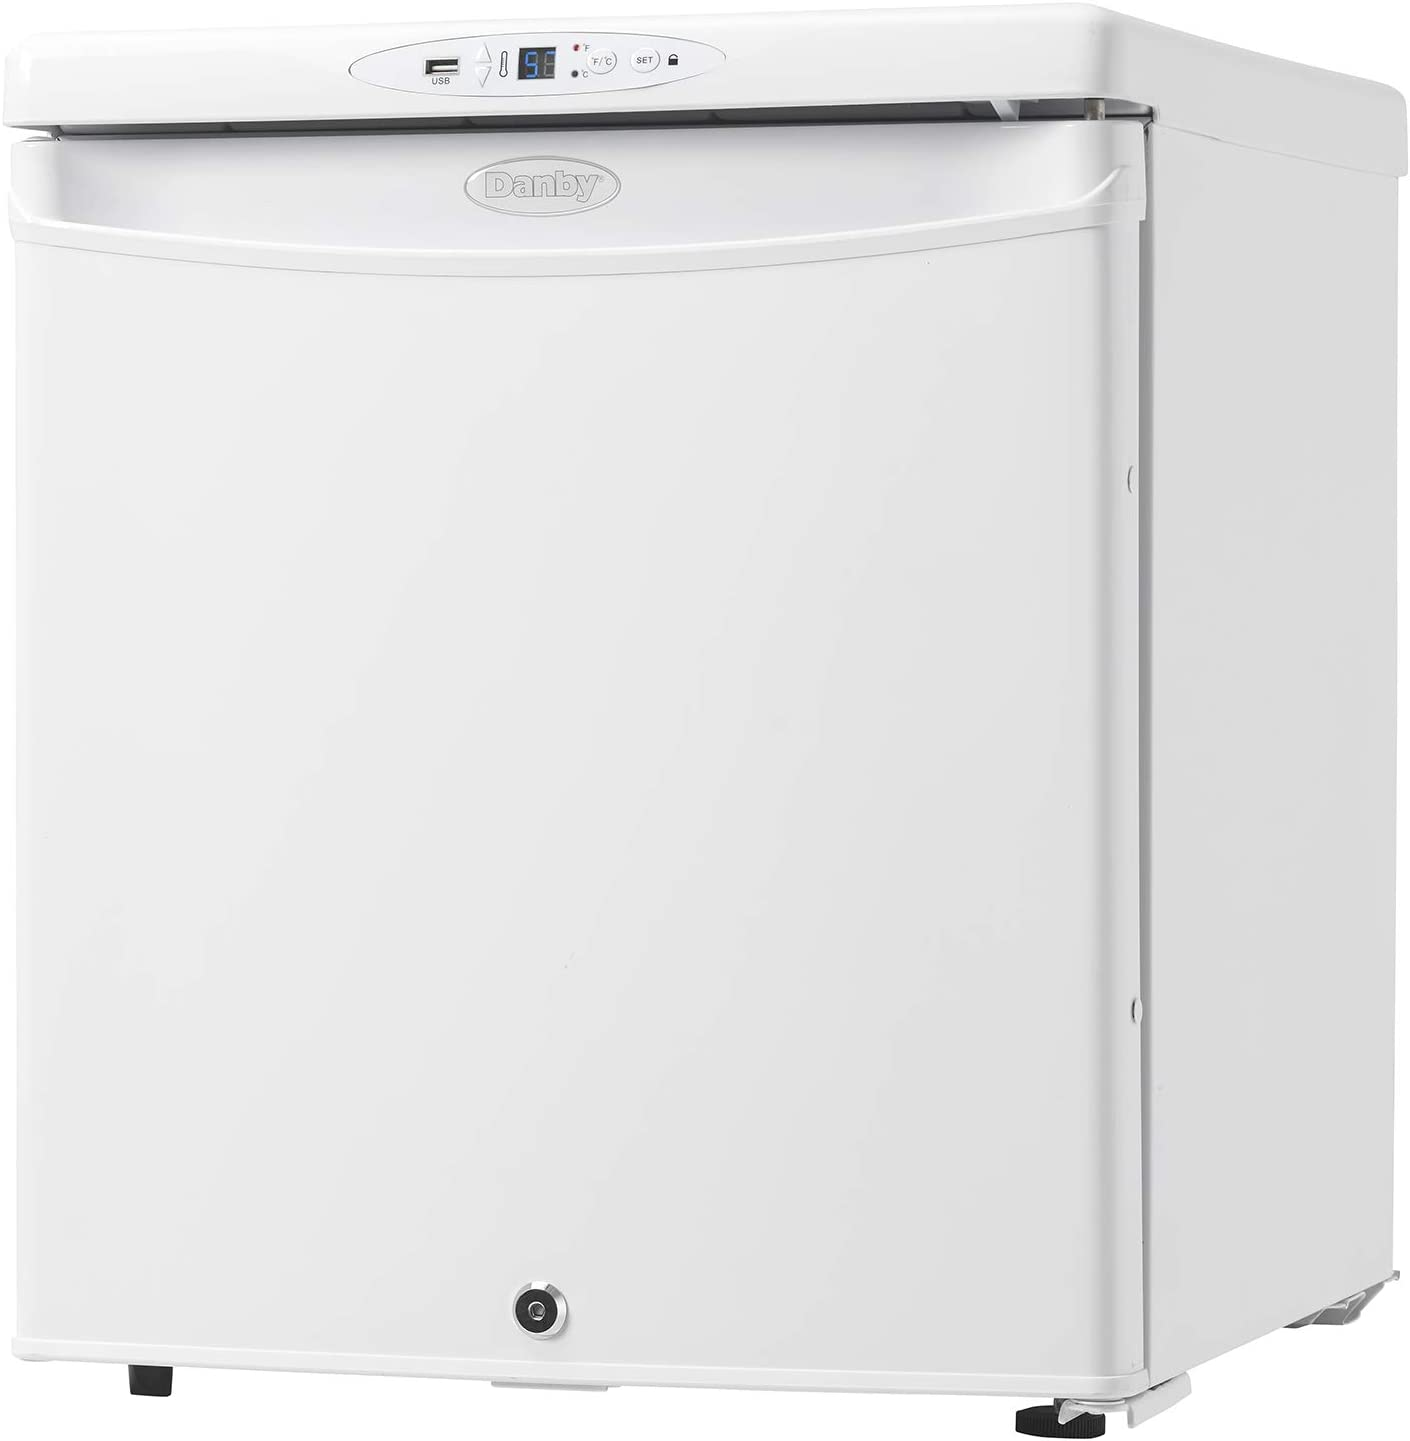 Danby DH016A1W-1 Health Commercial Grade Medical Mini Fridge, White